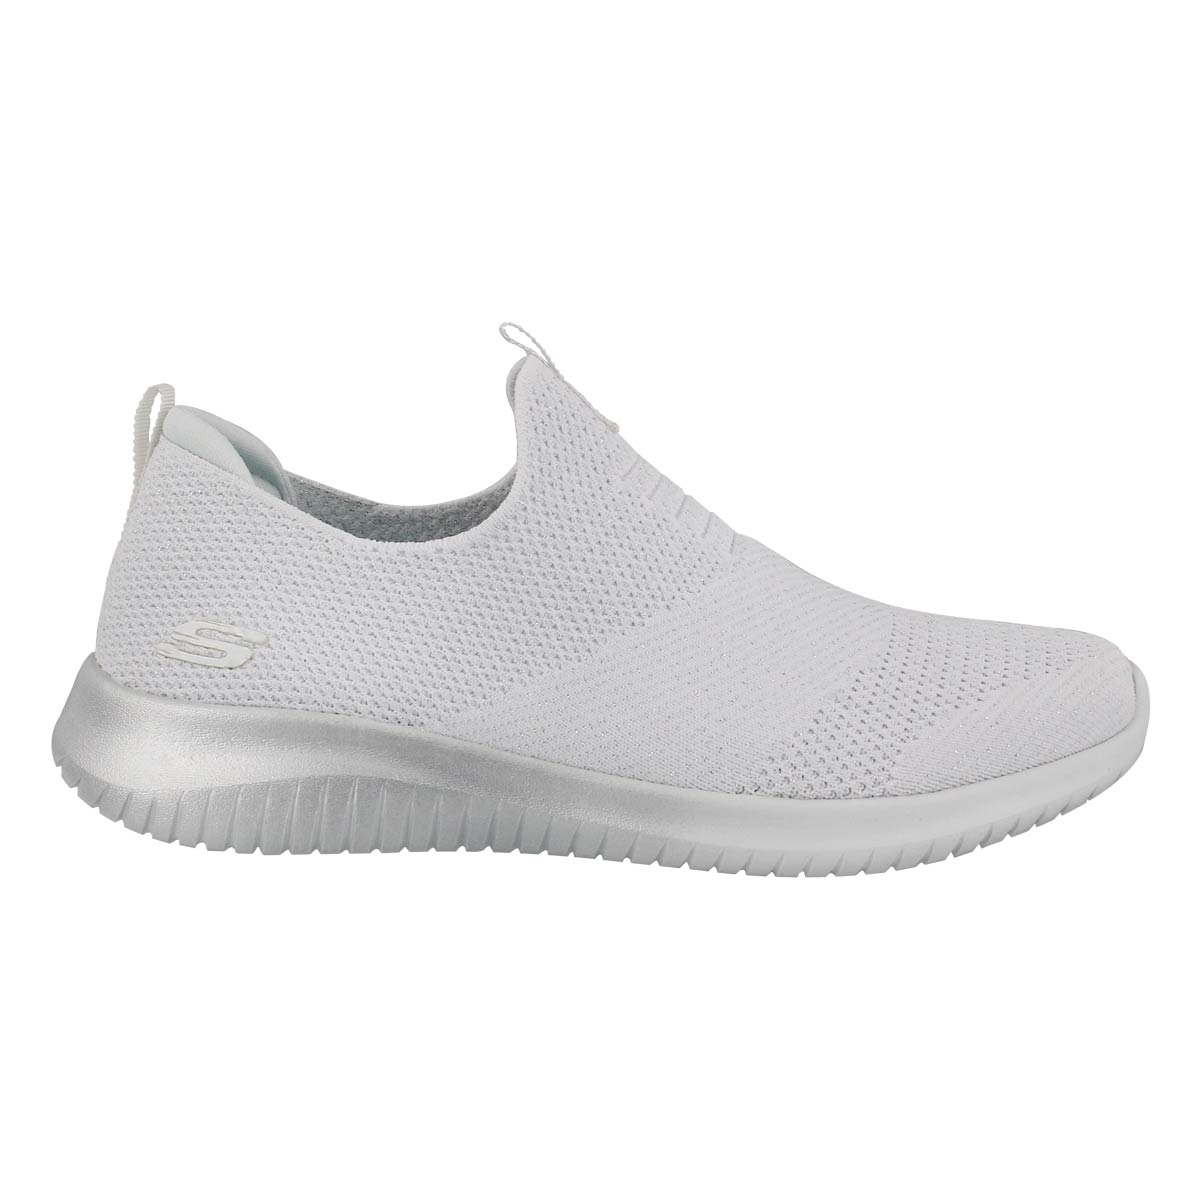 Lds Ultra Flex wht/slvr slip on sneaker